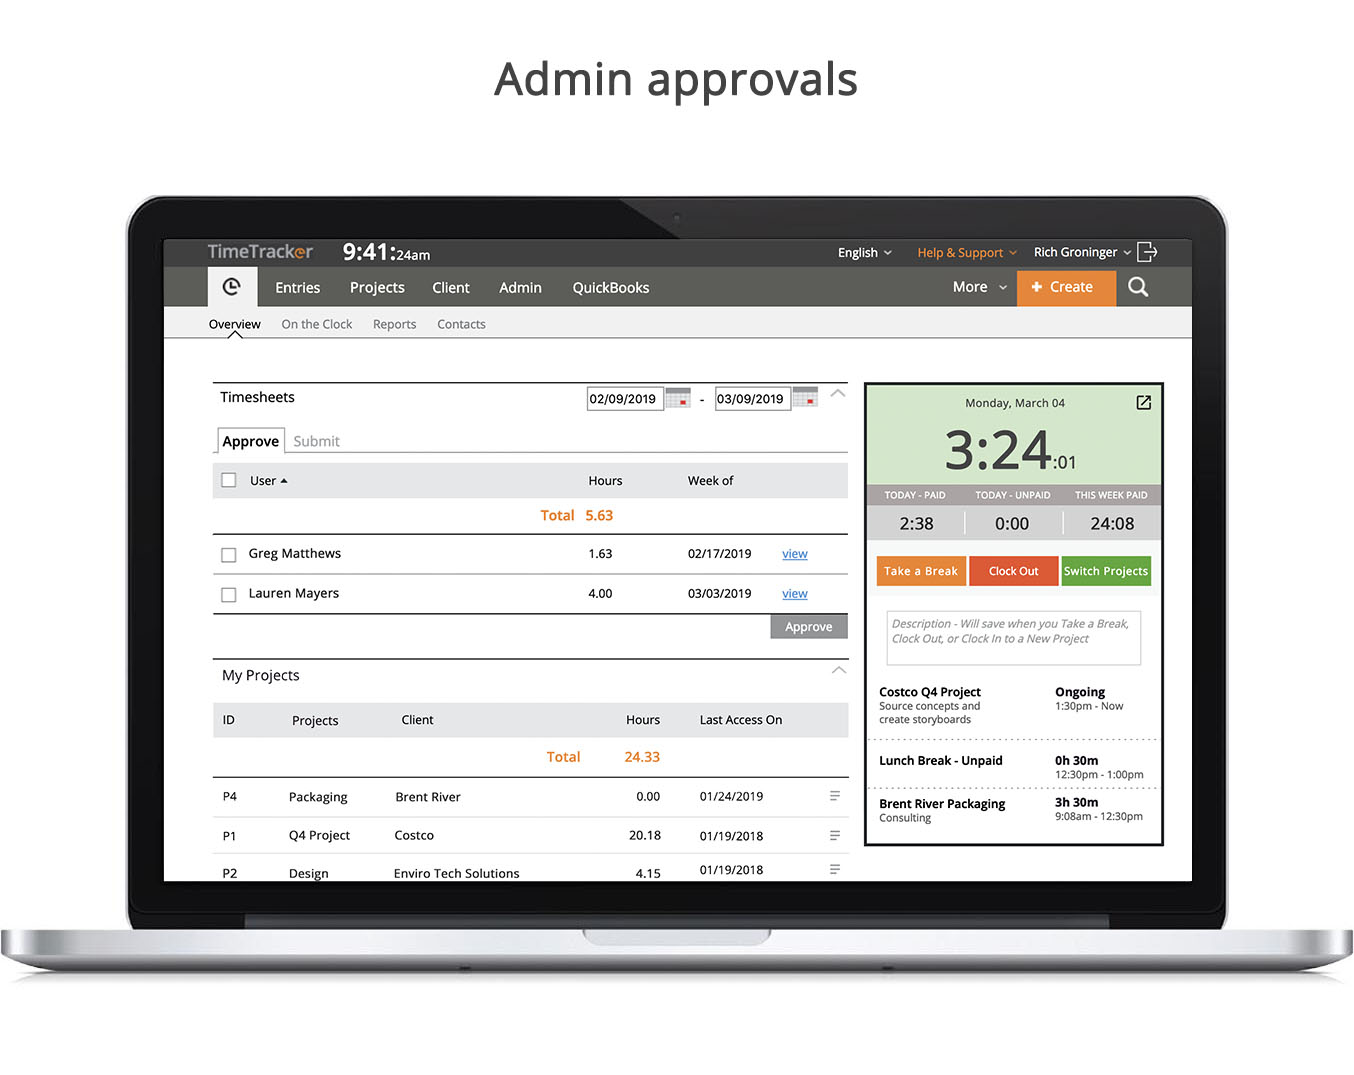 Admin approvals